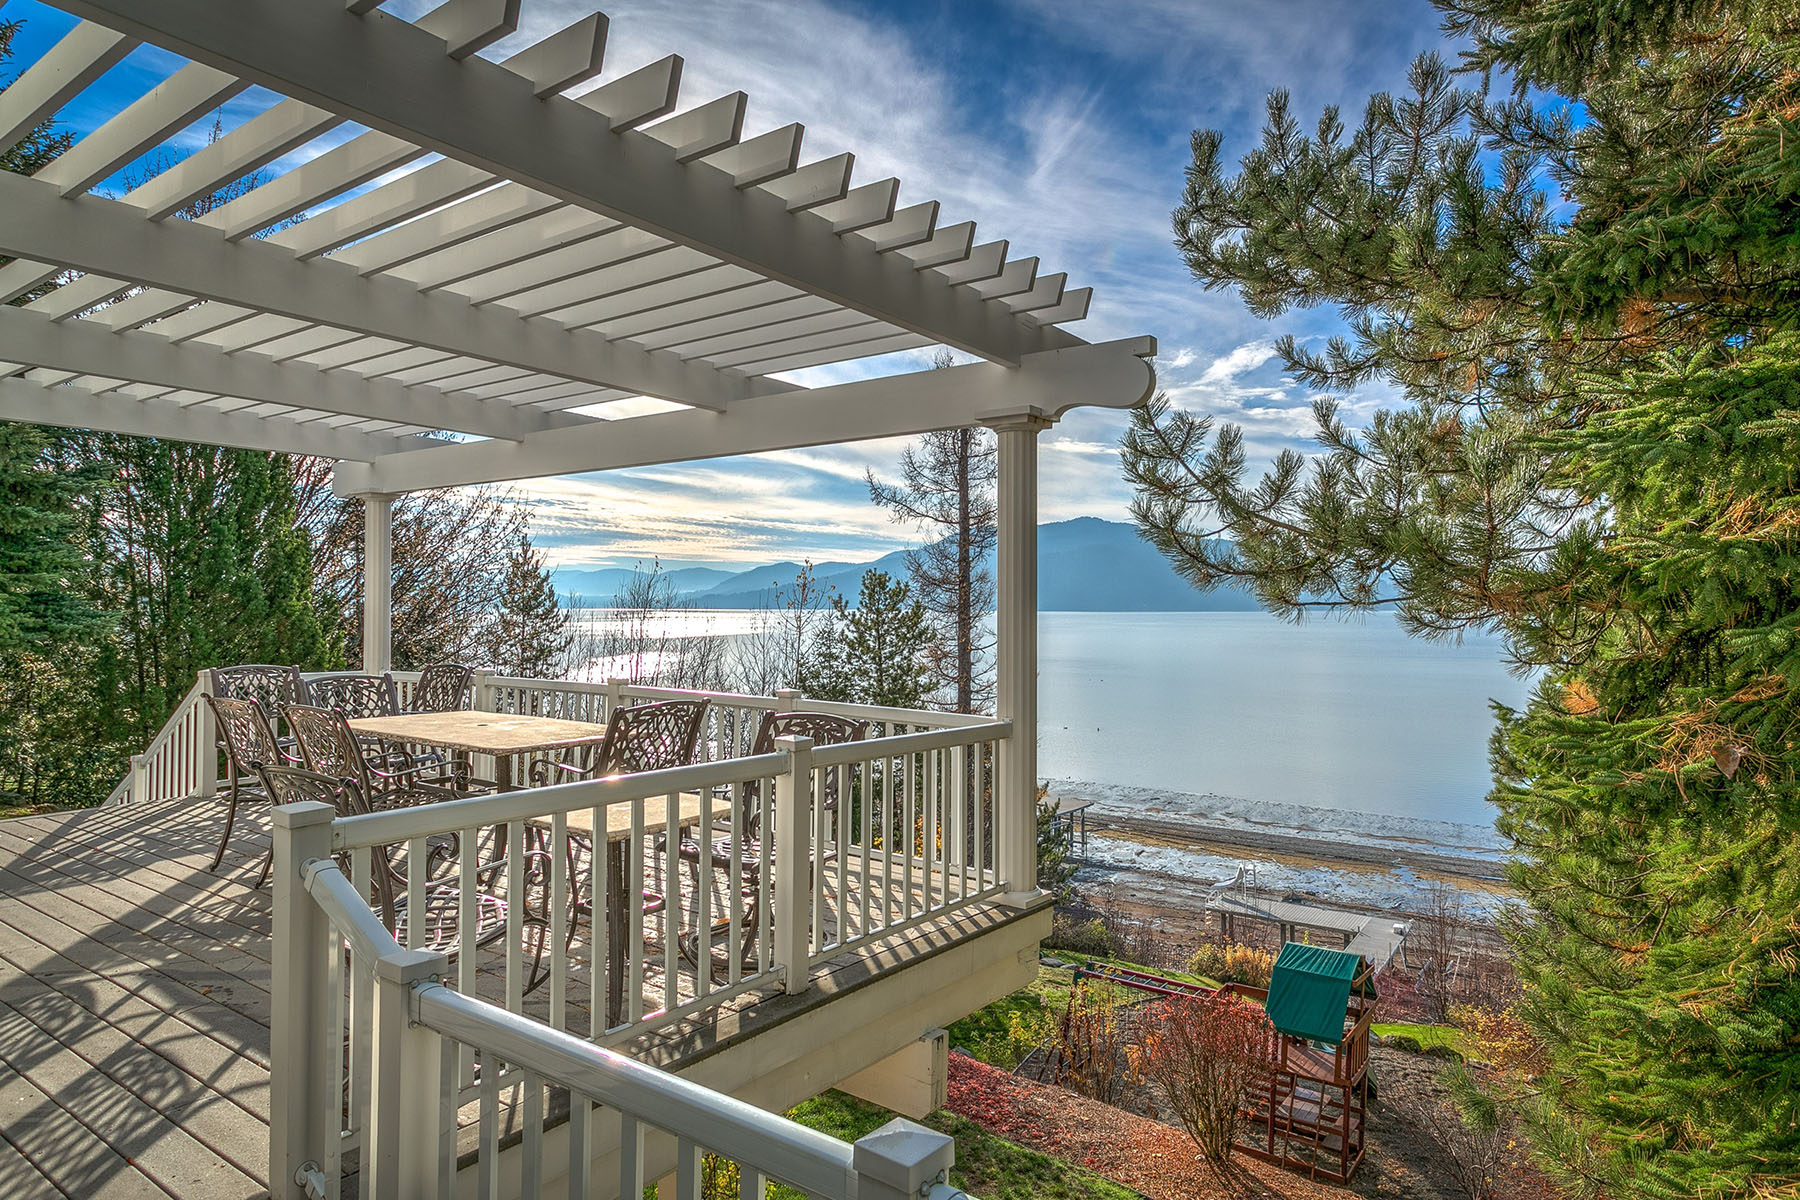 Villa per Vendita alle ore Ponder Point Drive Waterfront 616 Ponder Point Dr Sandpoint, Idaho, 83864 Stati Uniti